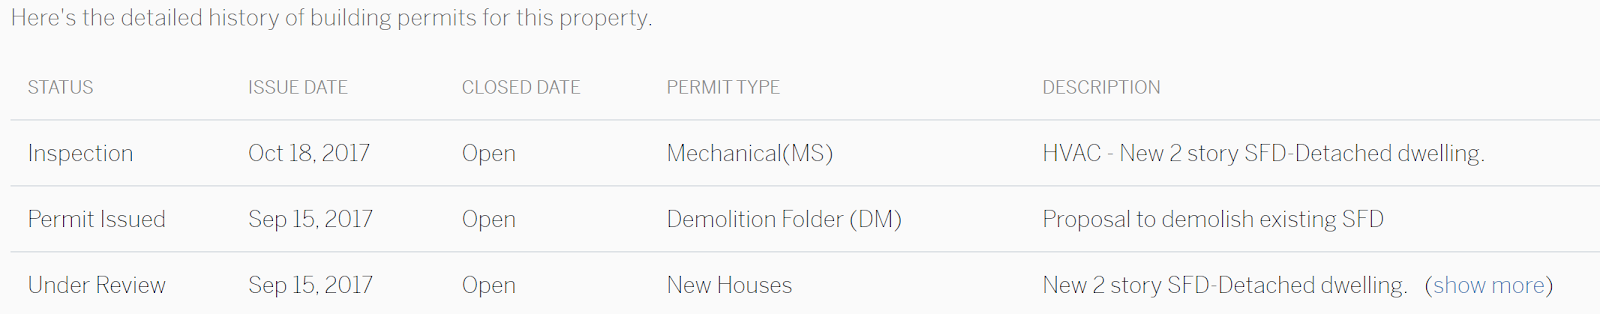 Building Permit Table Screenshot-1